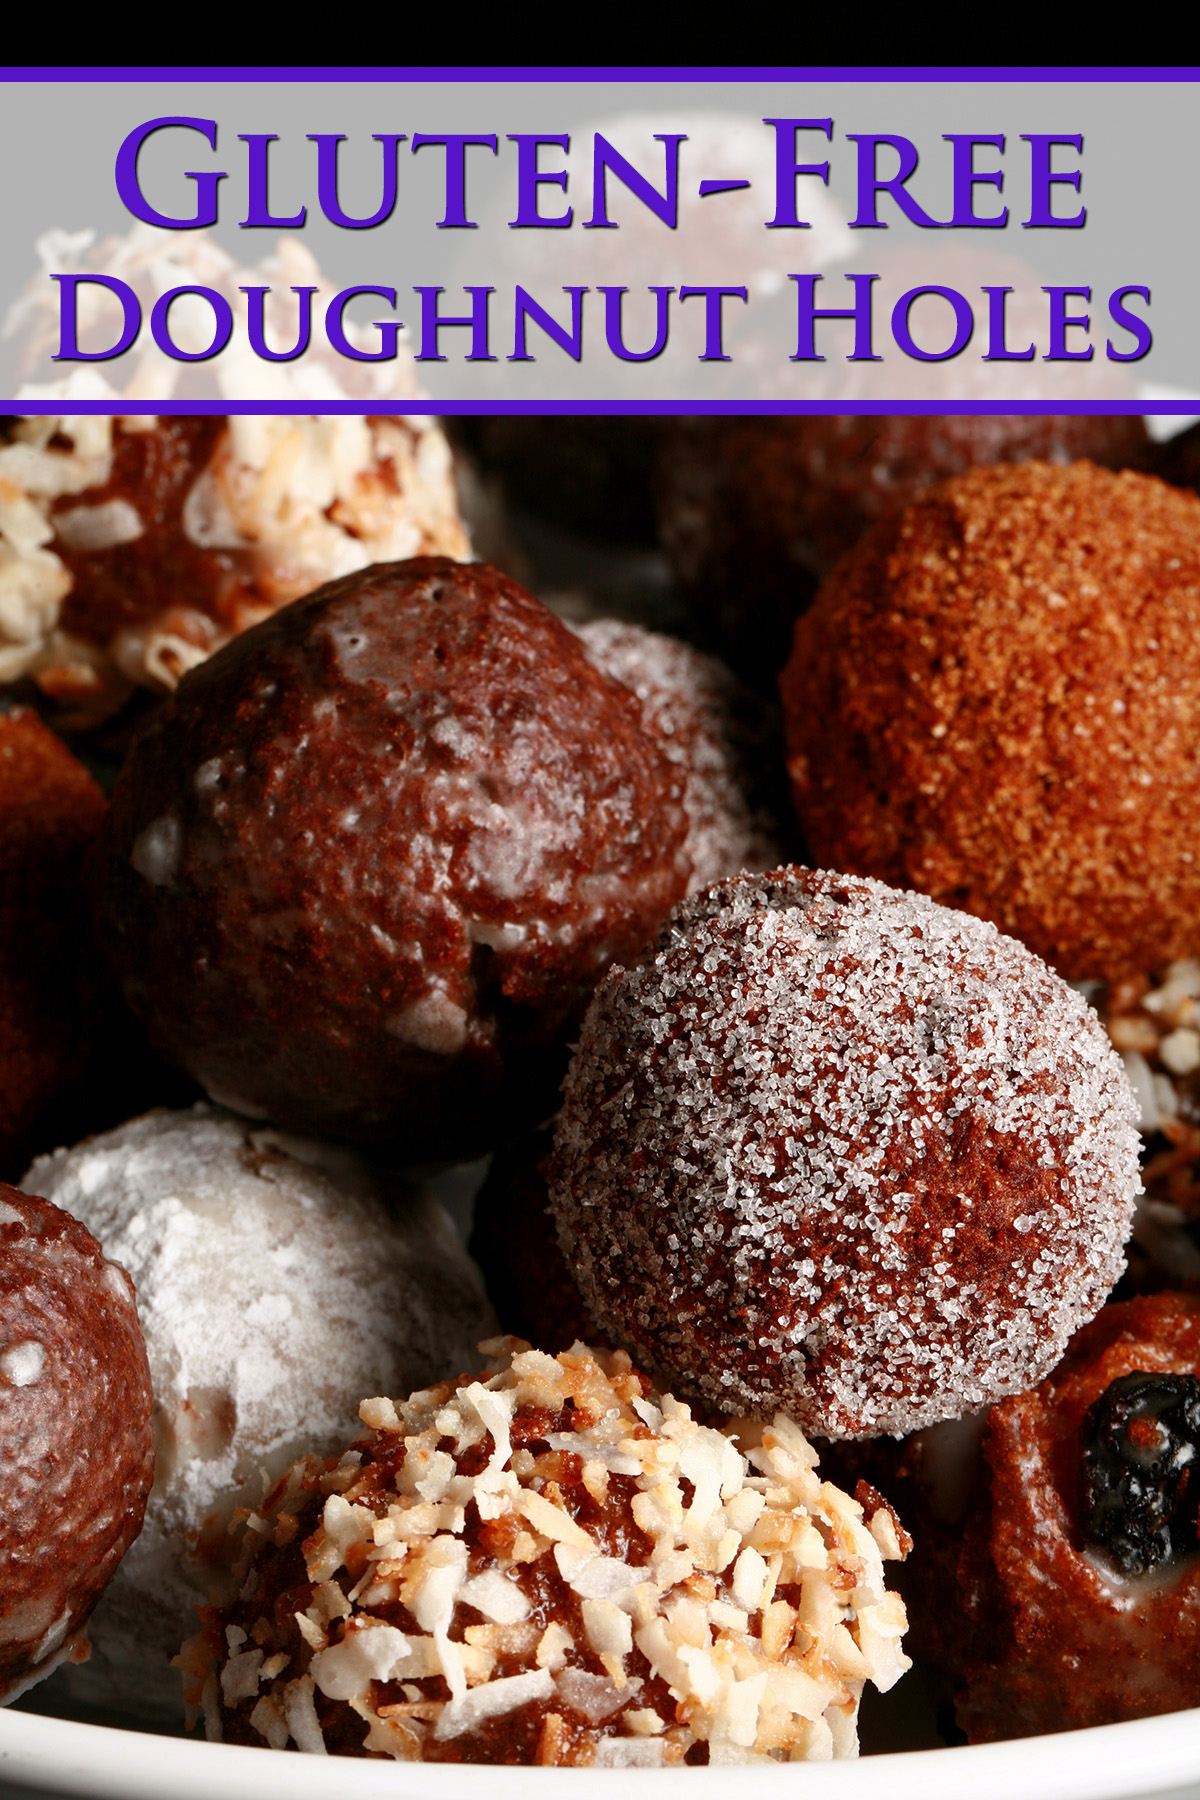 A close up view of an assortment of gluten-free donut holes: Toasted coconut, chocolate glazed, cinnamon sugar, powdered sugar, and dutchie versions are all visible.